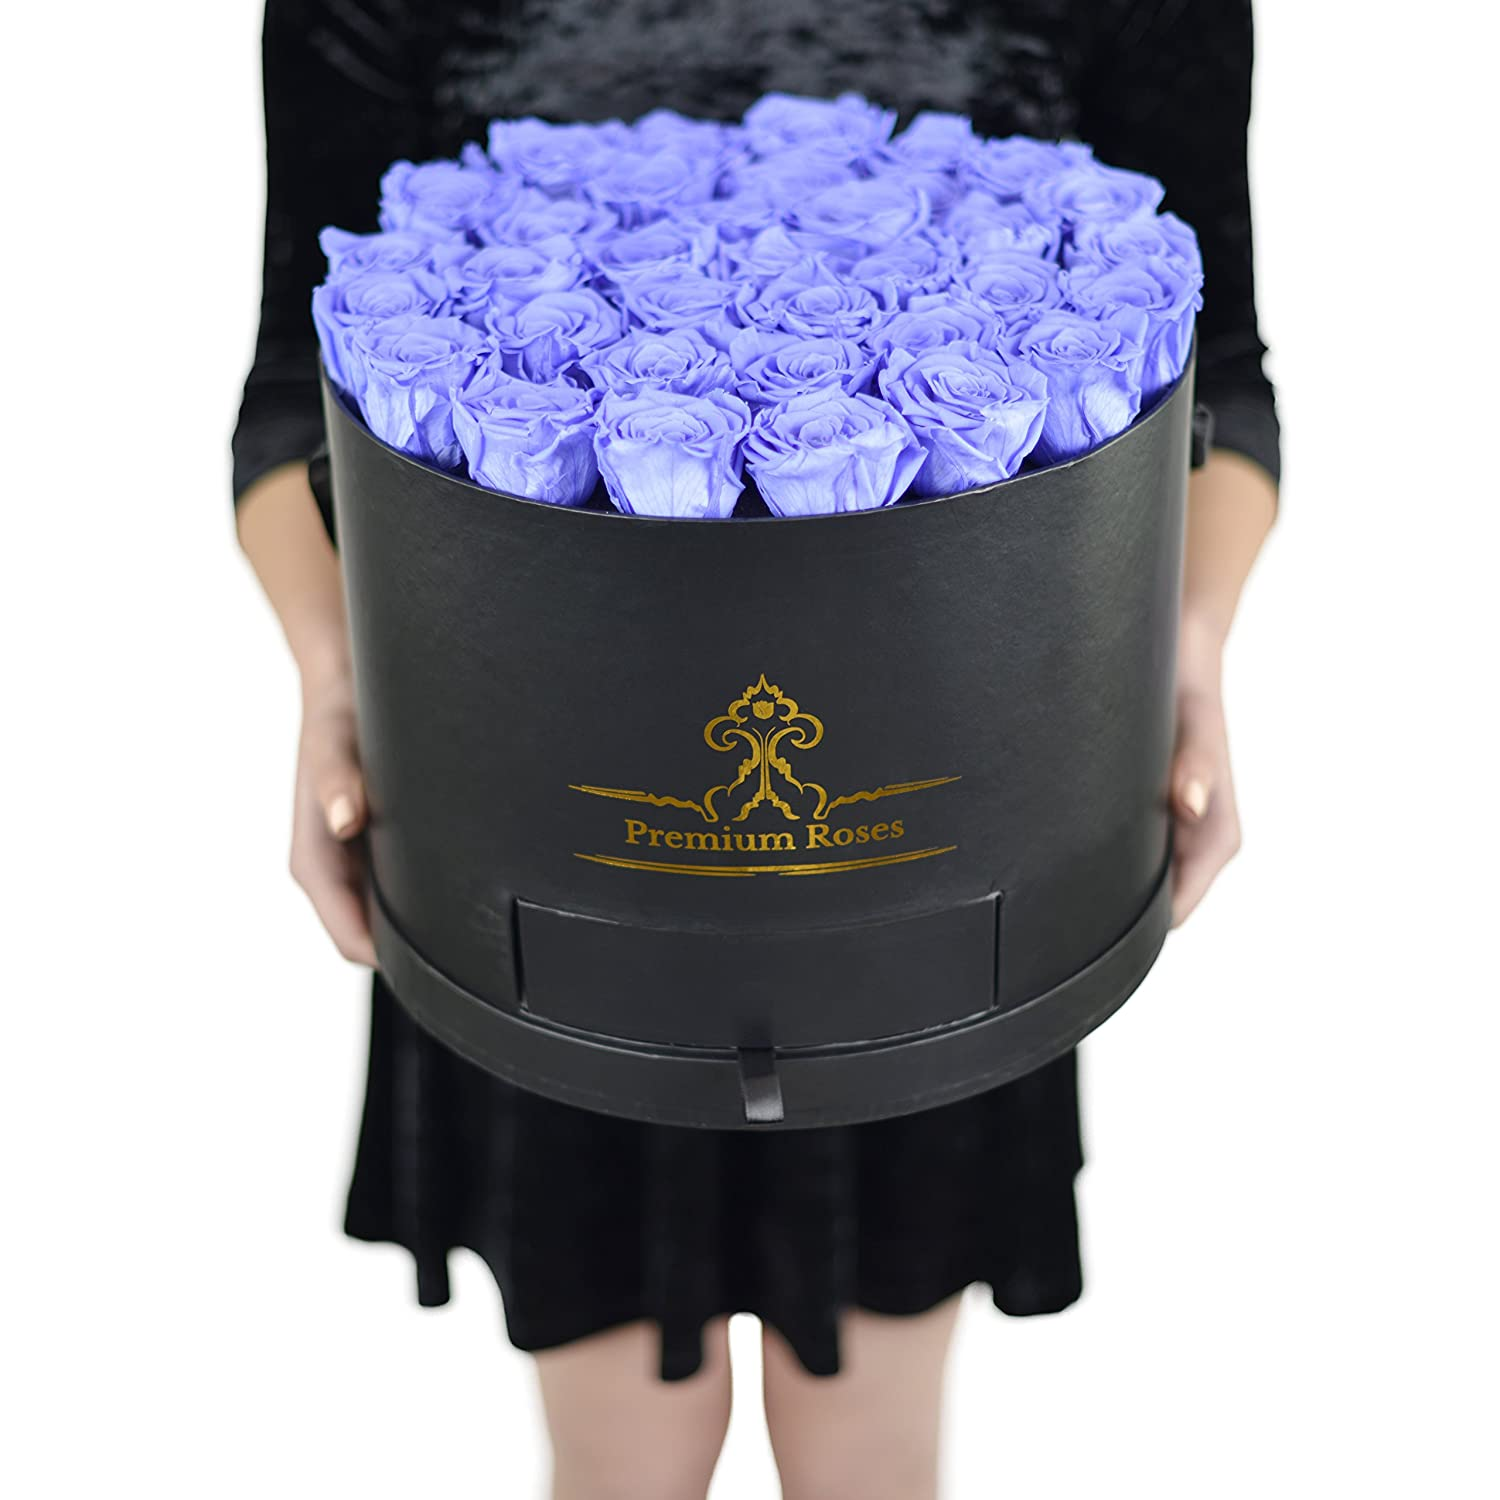 Premium Roses| The Roses can Last 1year (Roses in the Box, Best Gift for Her, Anniversaries, Birthdays & Valentines Day Mahd Enterprise